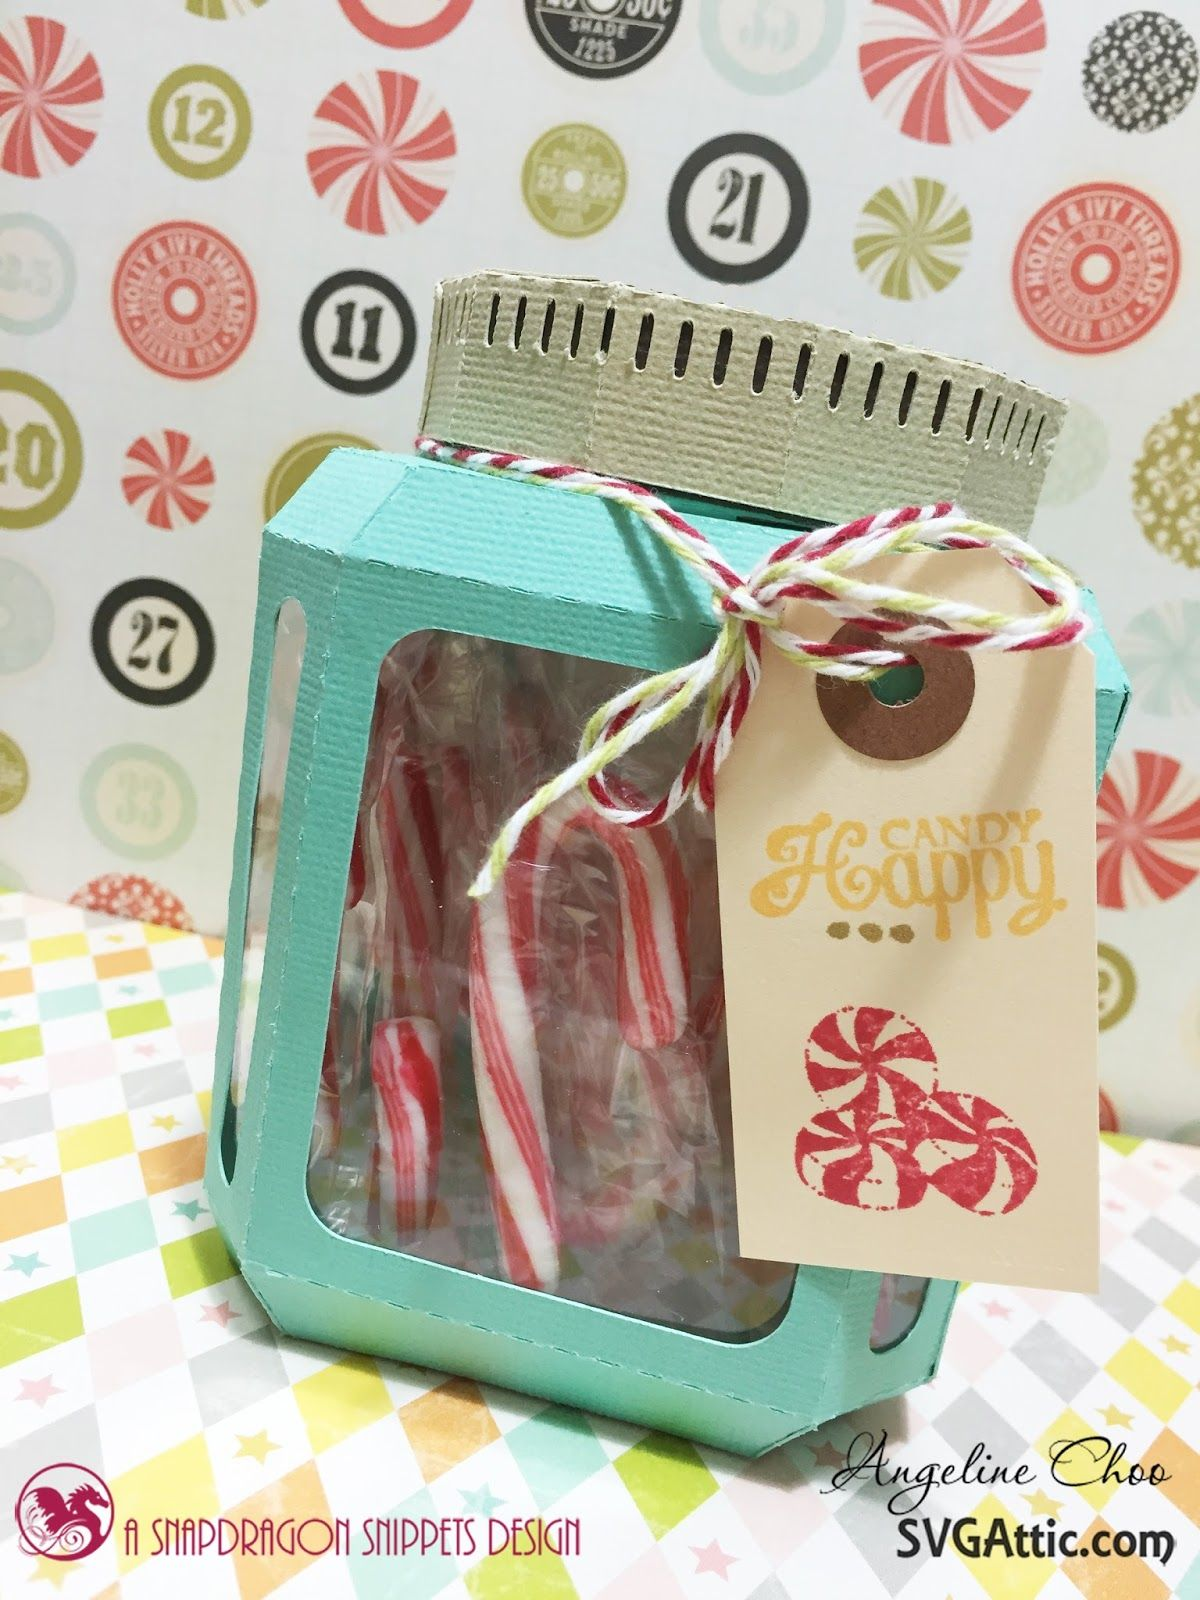 SVG Attic Candy Canes in a Jar with Angeline Choo